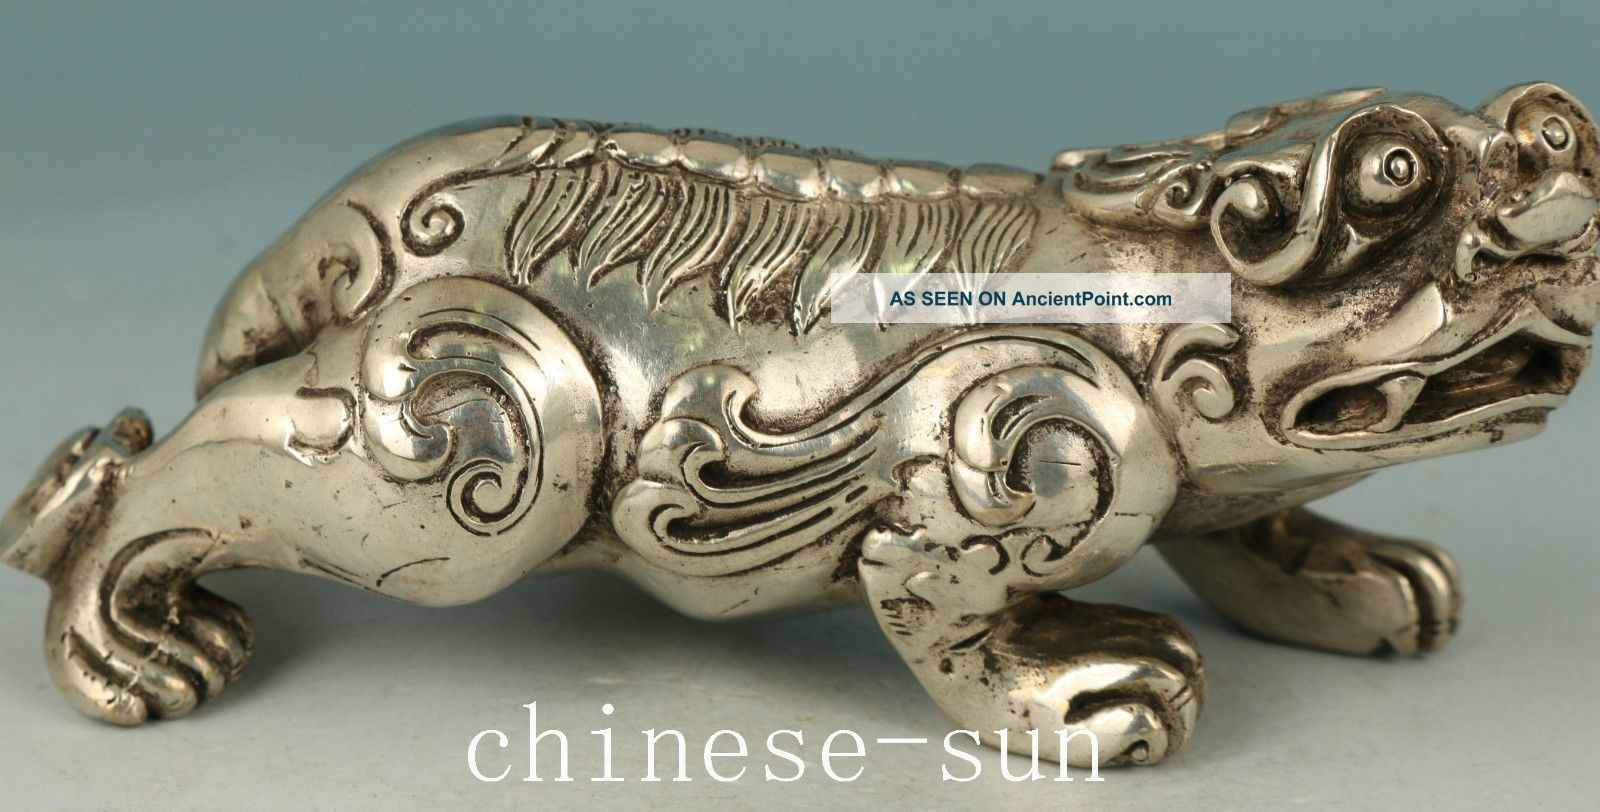 Asian Chinese Old Copper Plating Silver Carving Kirin Collect Statue Noble Gift Other Antique Chinese Statues photo